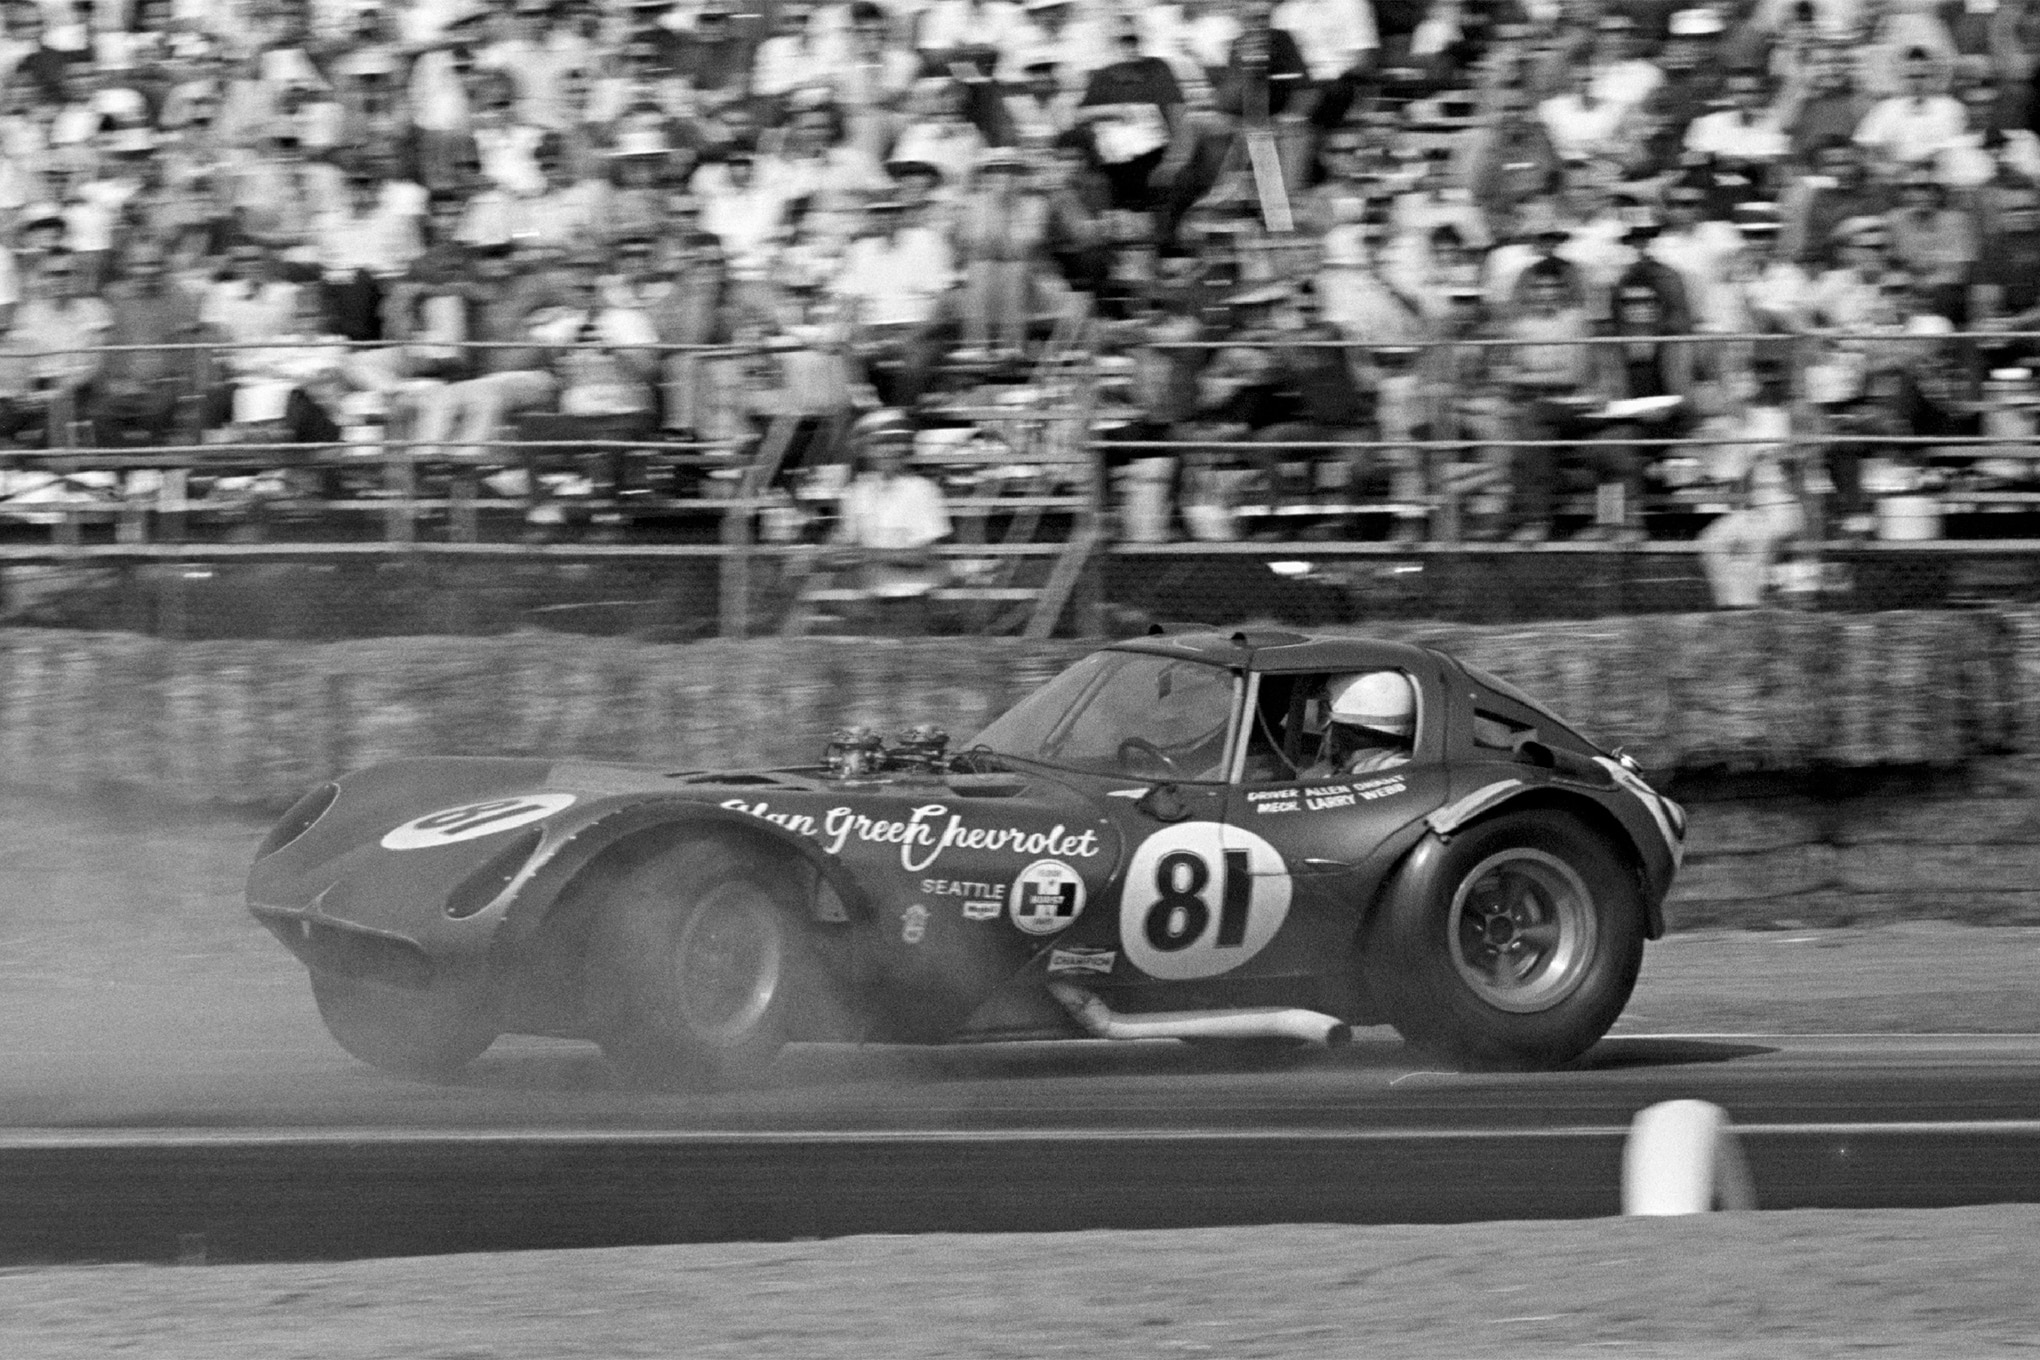 Shown are the same car and driver, at the same Riverside event, demonstrating the Cheetah's unnerving tendency to suddenly swap ends in turns. Allen Grant managed to keep Alan Green Chevrolet's entry intact and make it back to Riverside two weeks later for a nonpoints meet sponsored by Petersen's Sports Car Graphic magazine, but again spun out of contention.